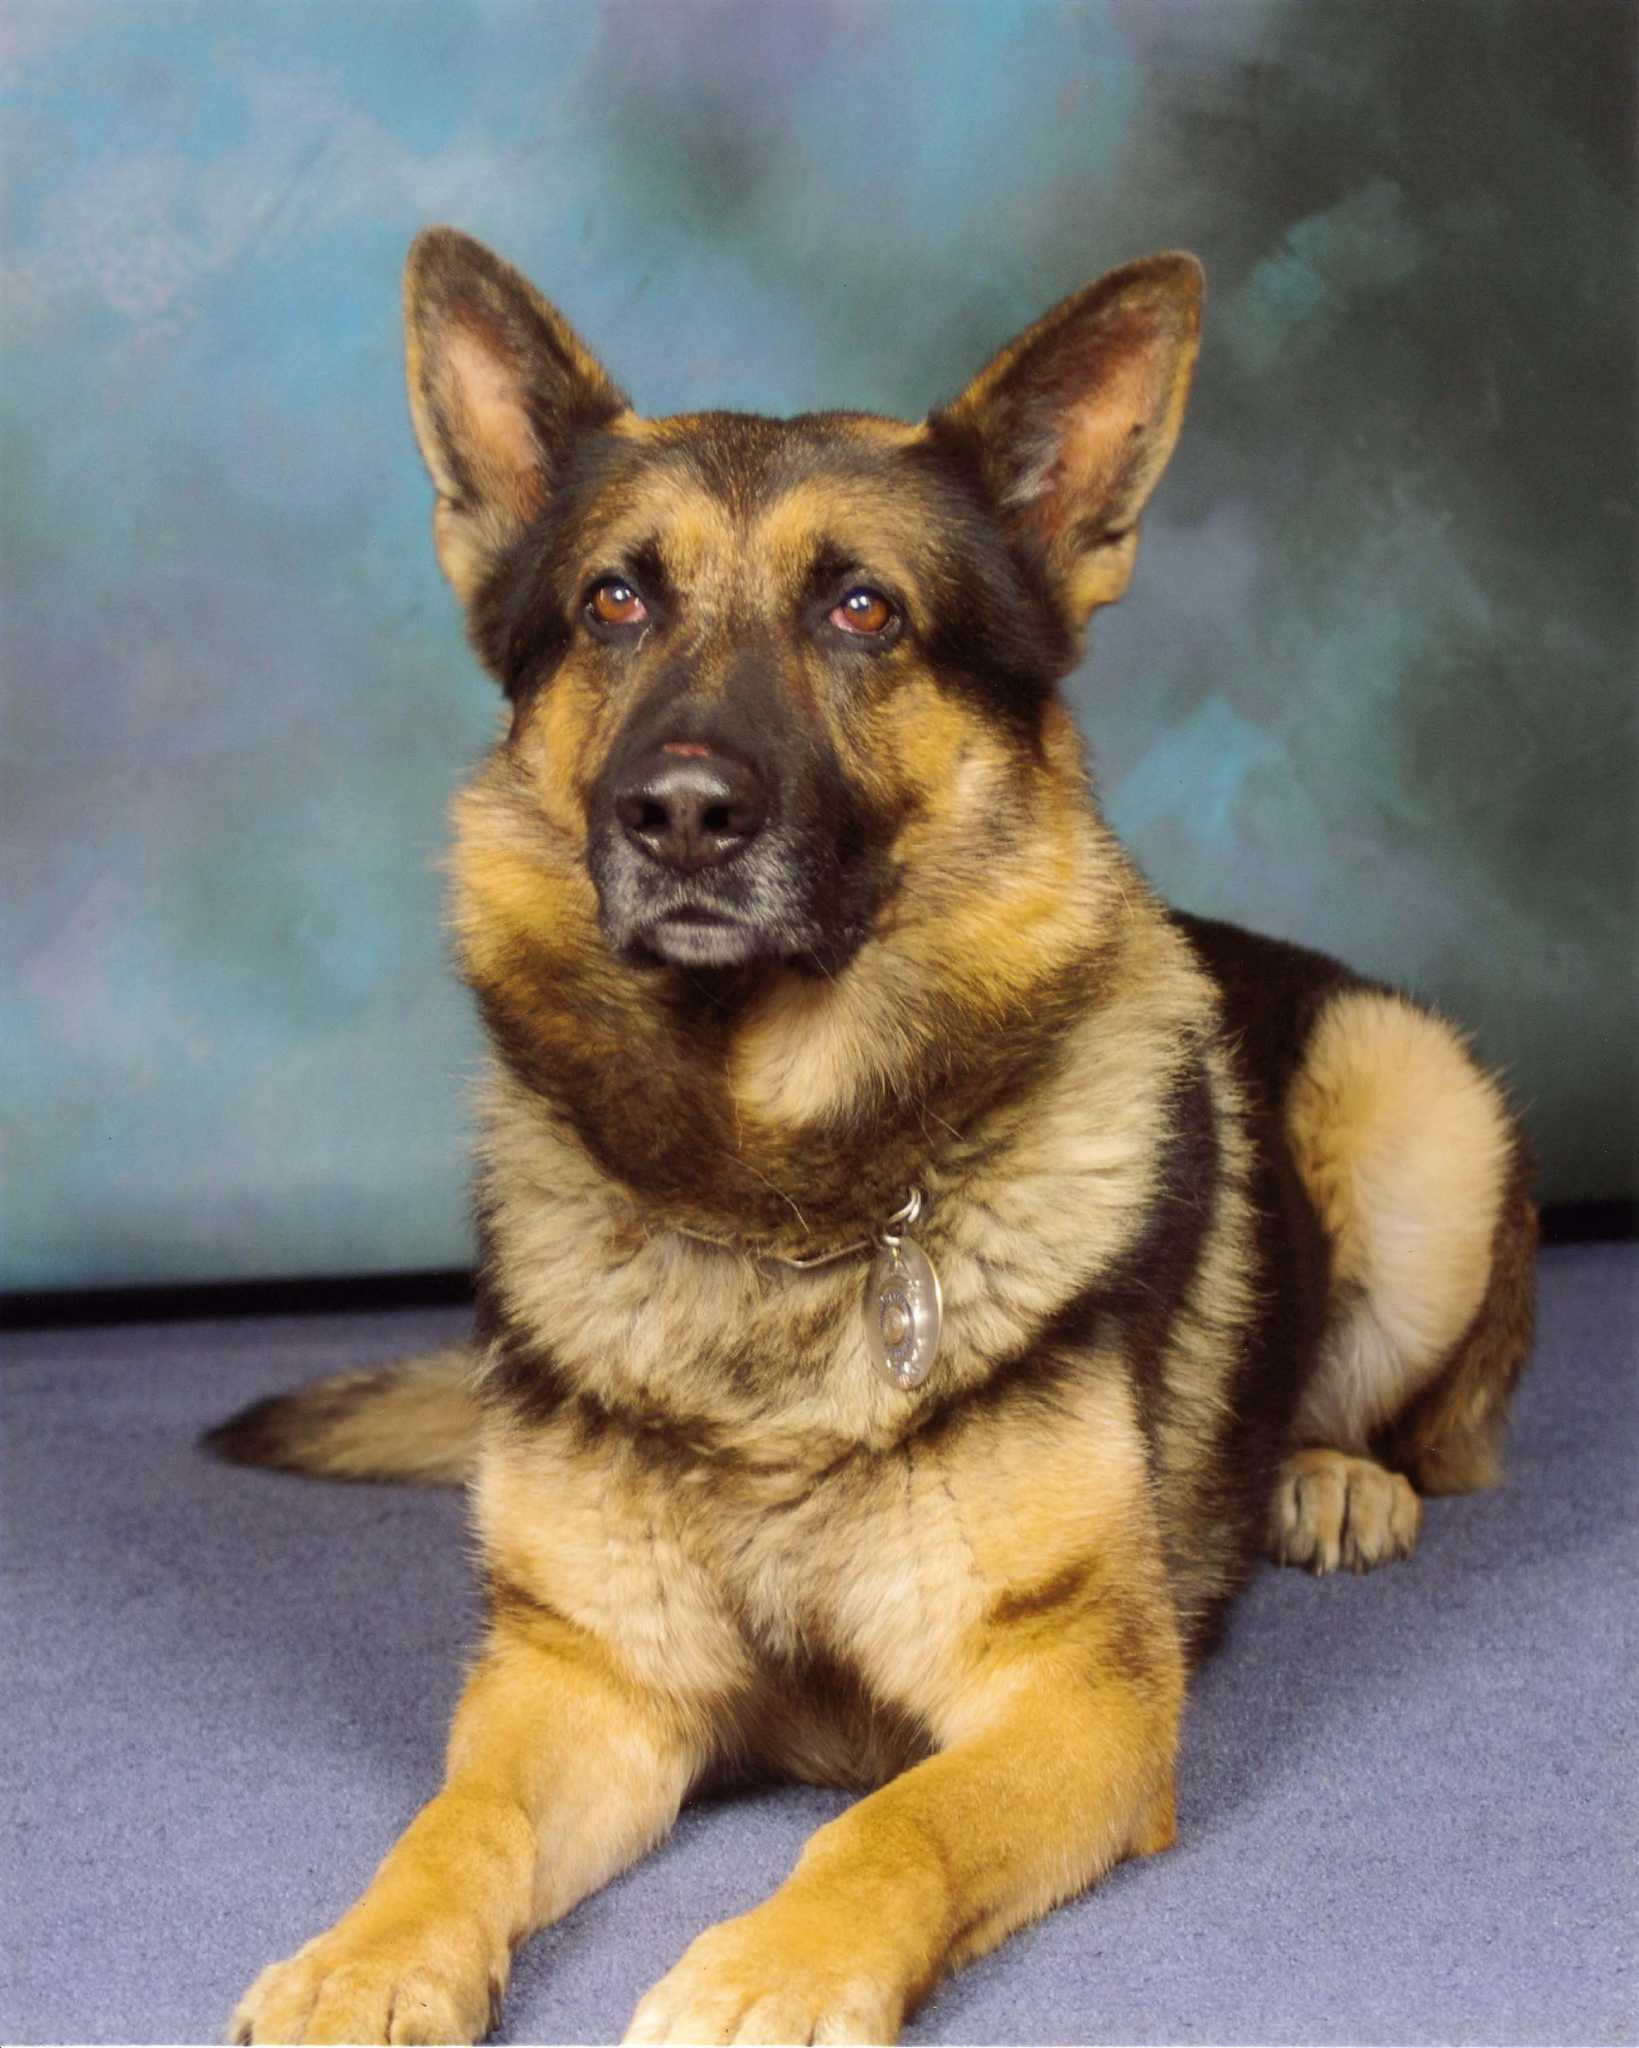 Discussion on this topic: How to Buy a Retired Police Dog, how-to-buy-a-retired-police-dog/